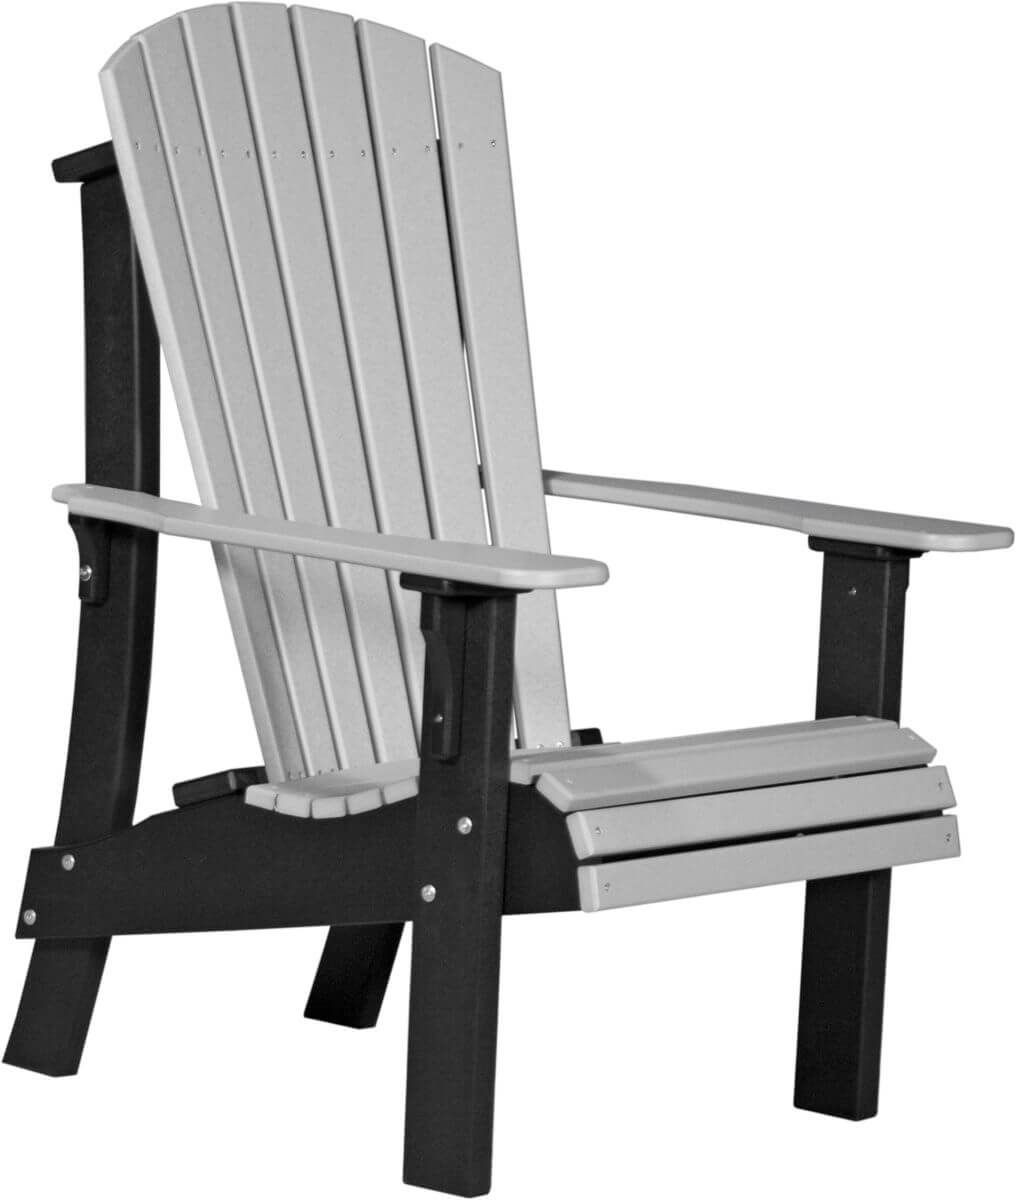 Dove Gray and Black Rockaway Highback Adirondack Chair